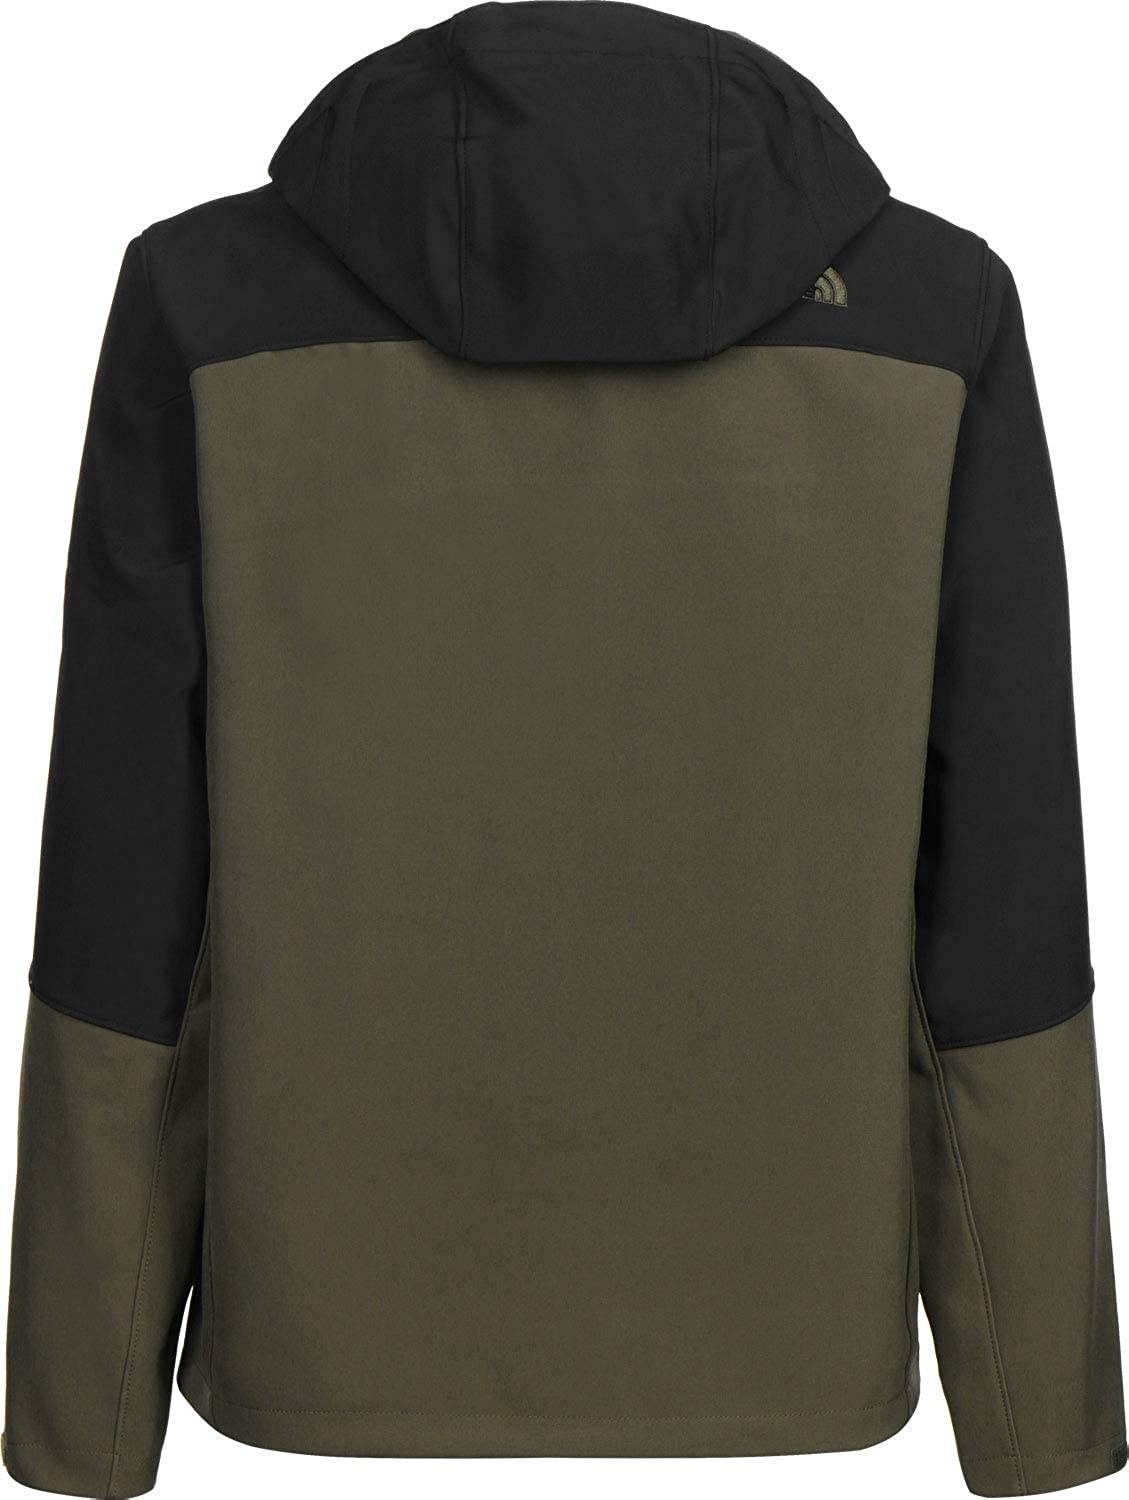 168a21375 The North Face Apex Men's Outdoor Jacket